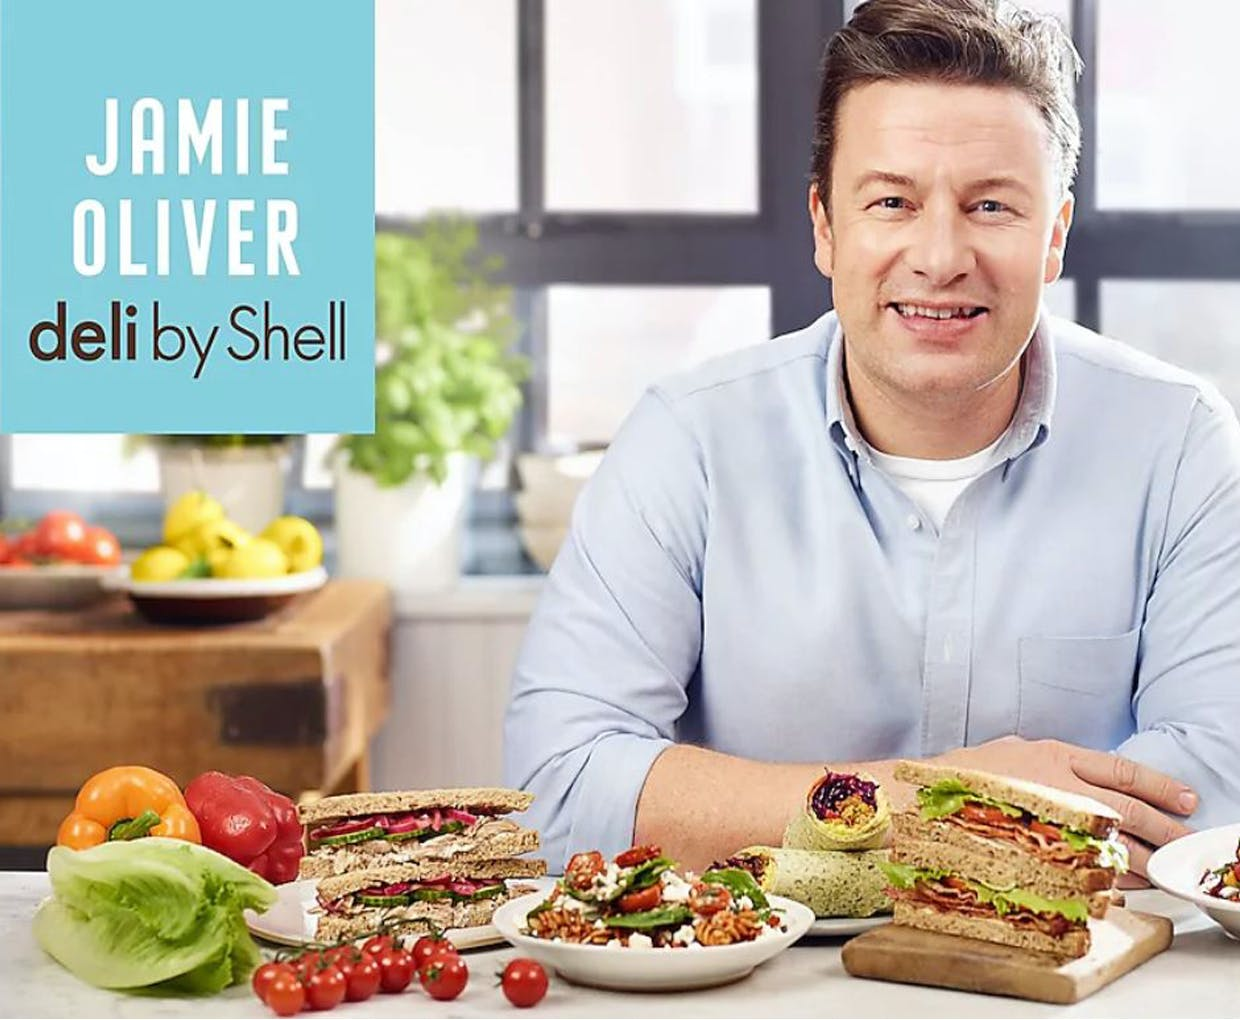 Jamie Oliver's defence of his Shell deal suggests an over ...